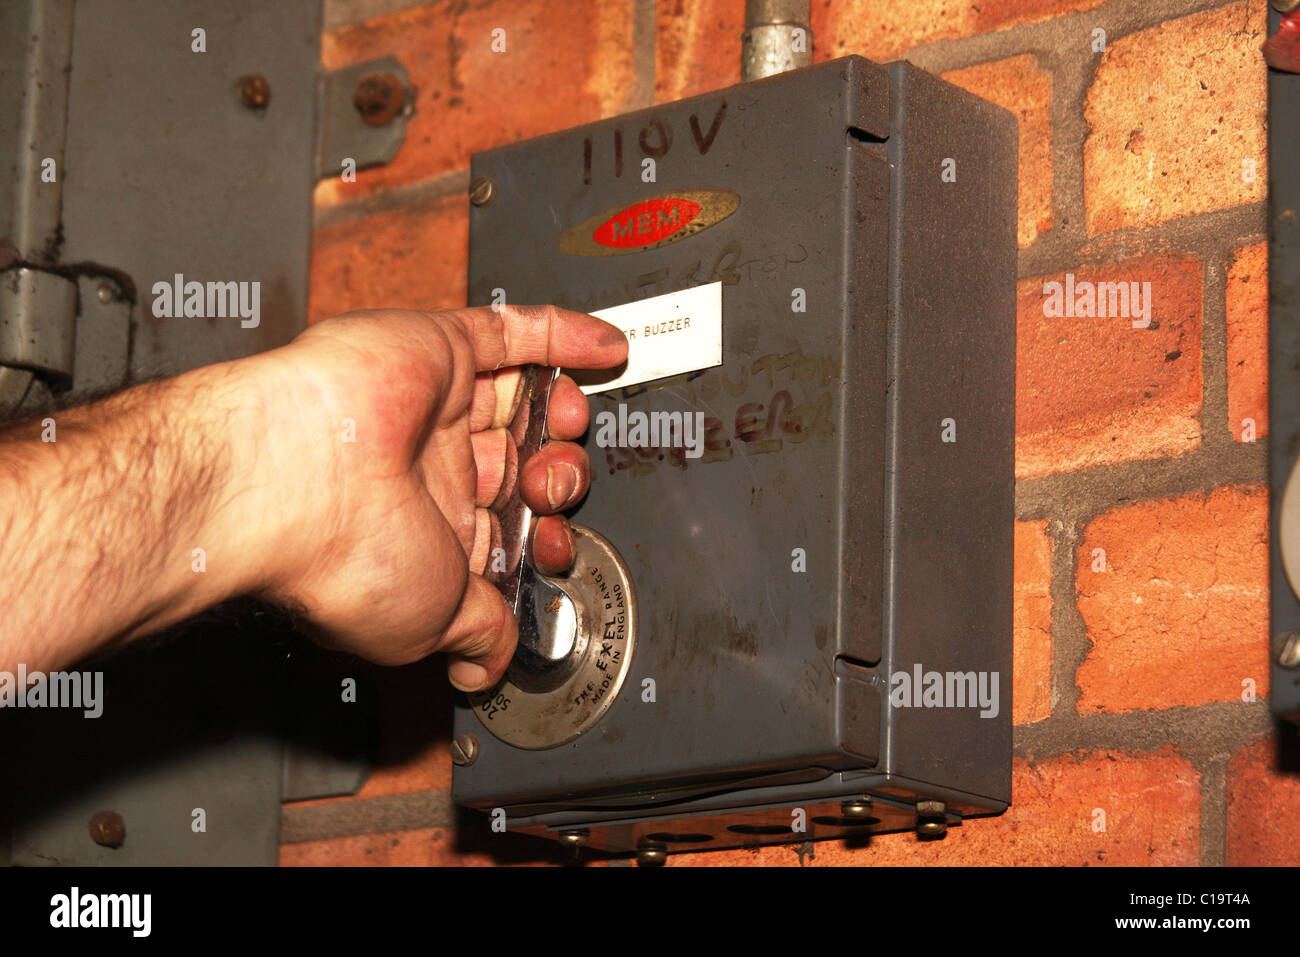 Hand about to operate 110 volt isolation switch. - Stock Image